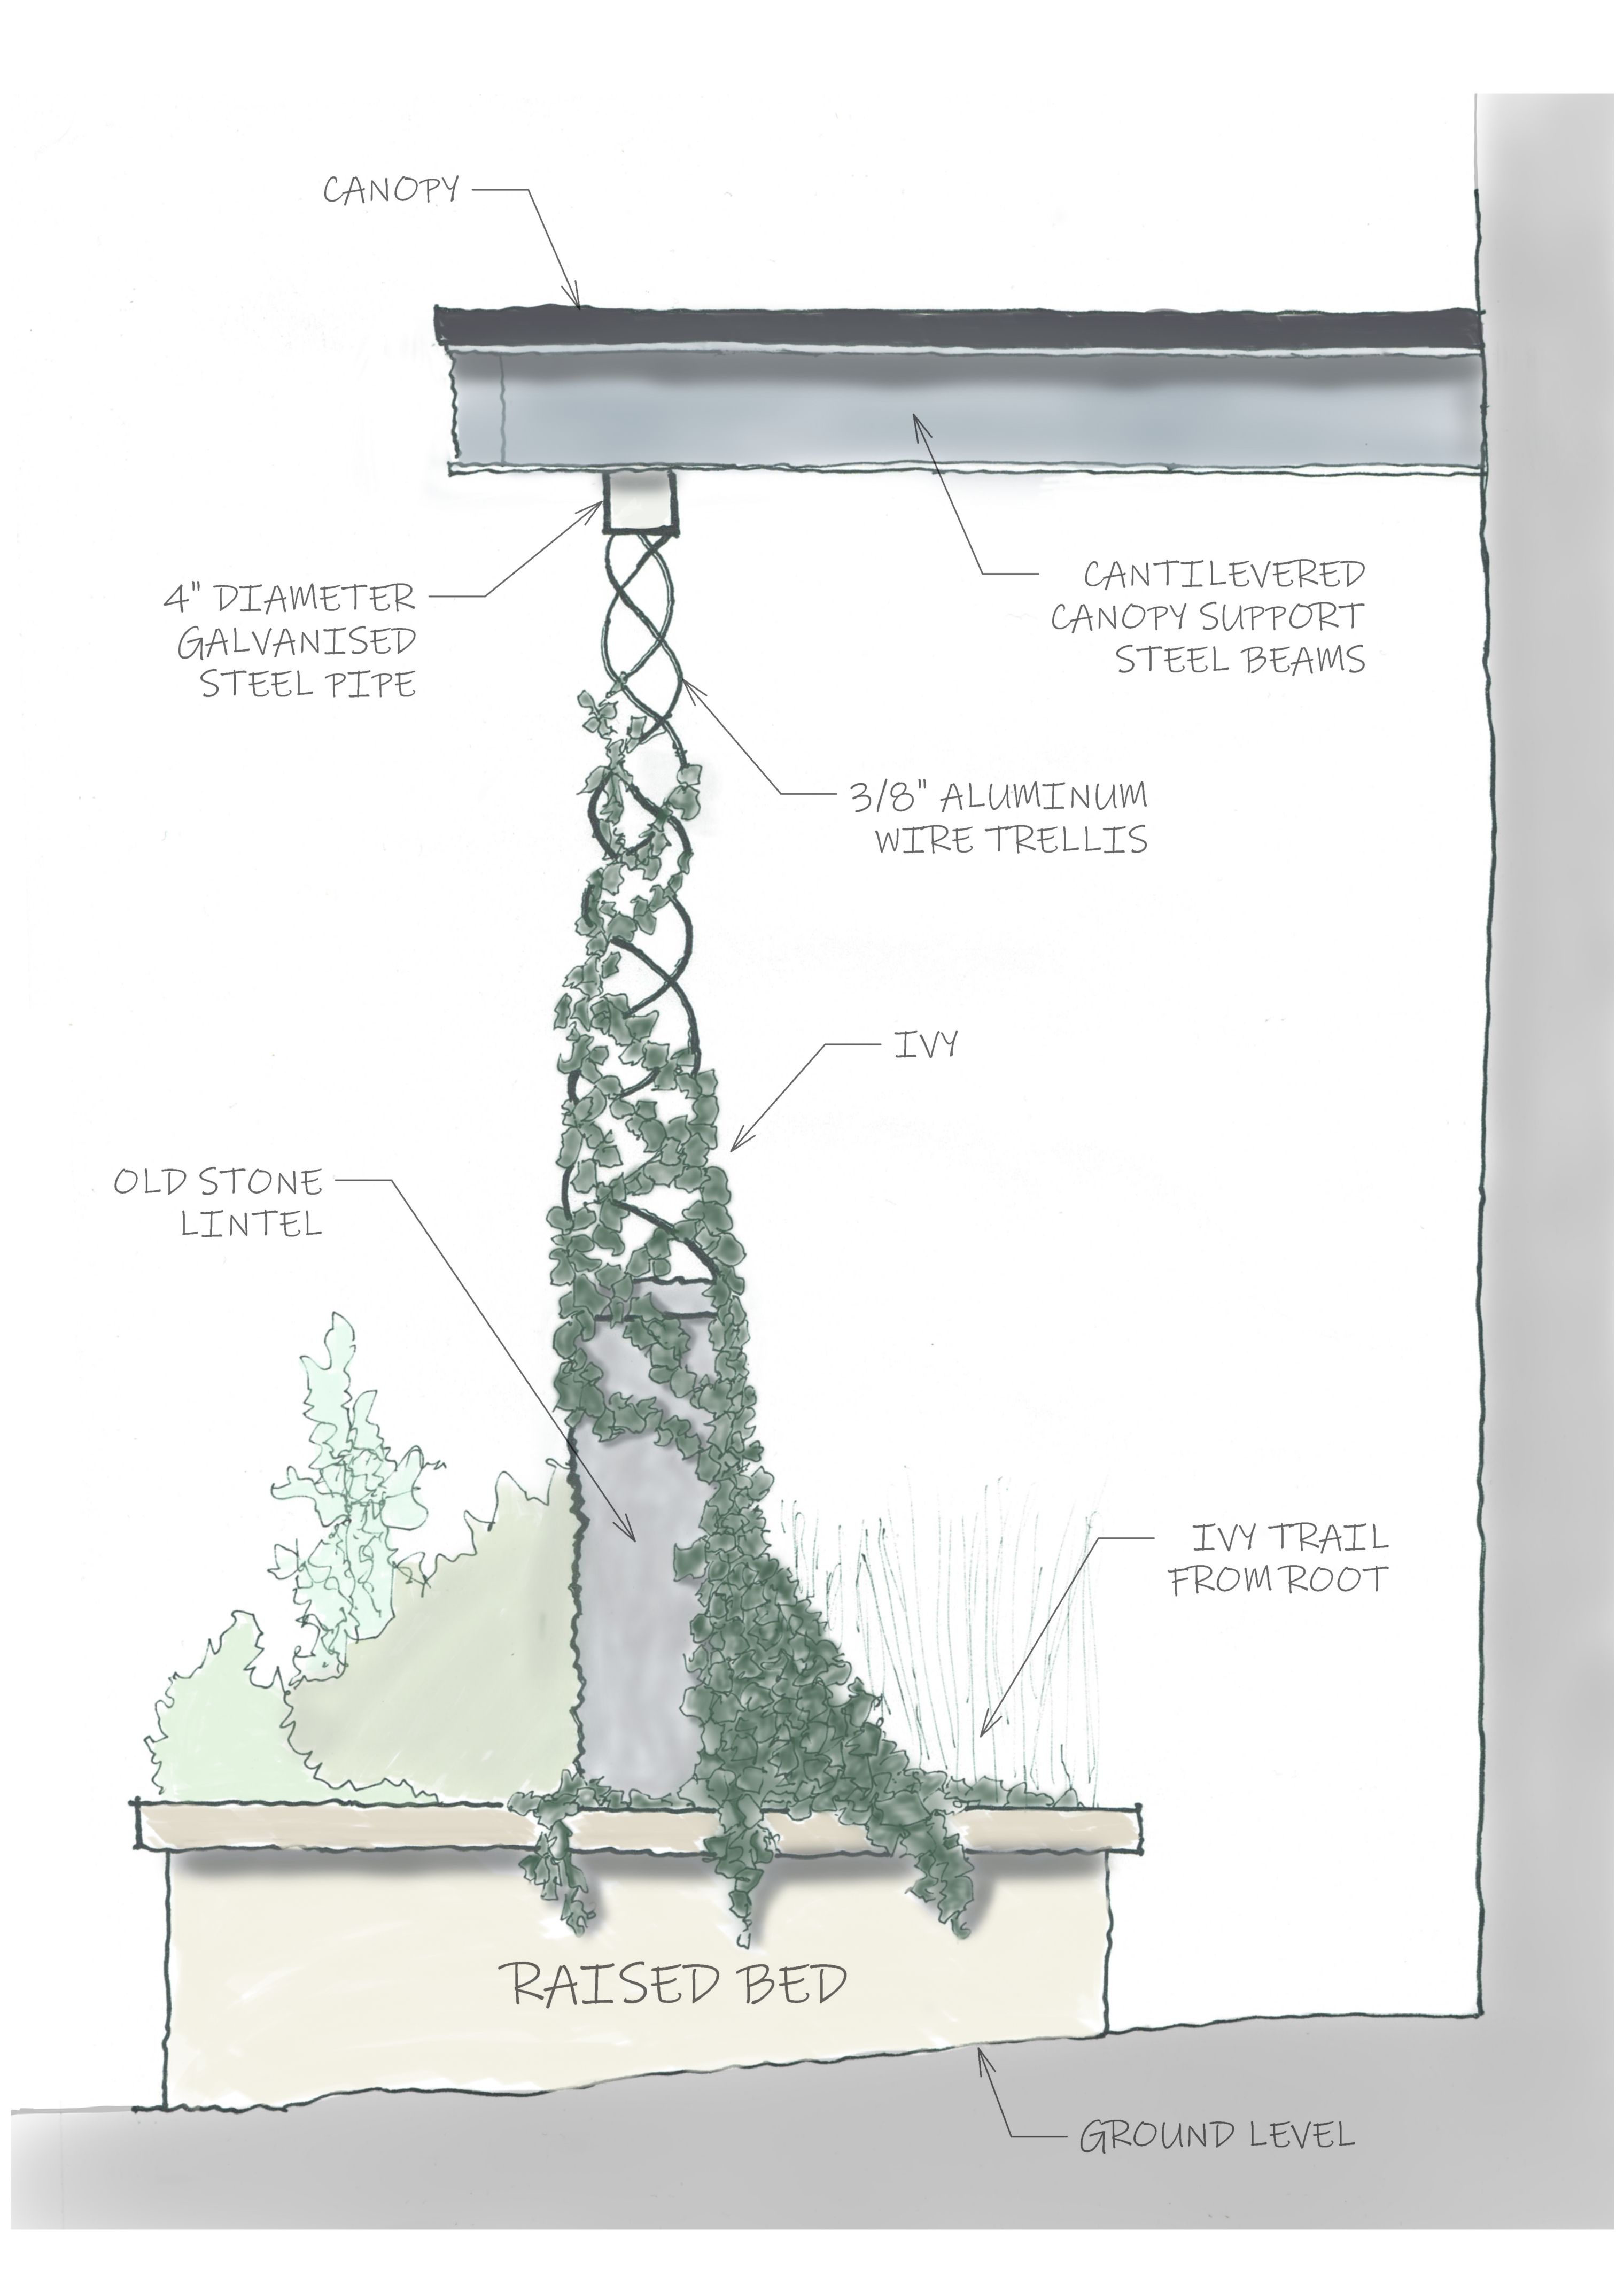 A side sketch of our in house designed living downspout